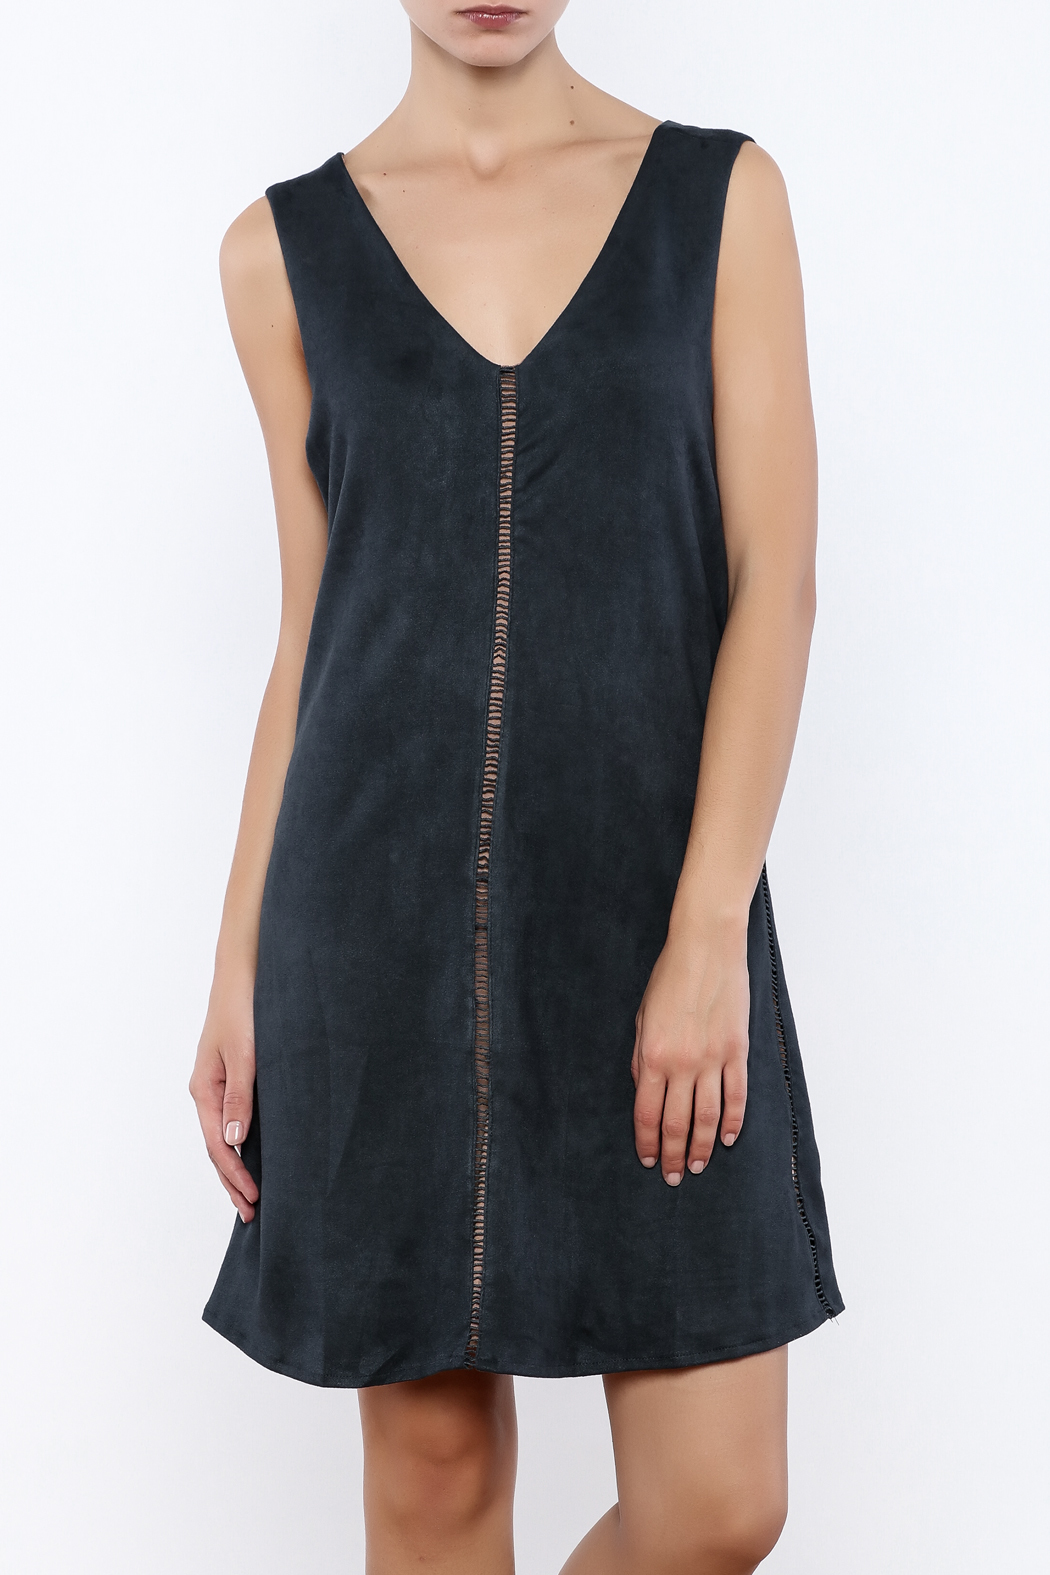 Miilla Sleeveless Faux Suede Dress - Main Image